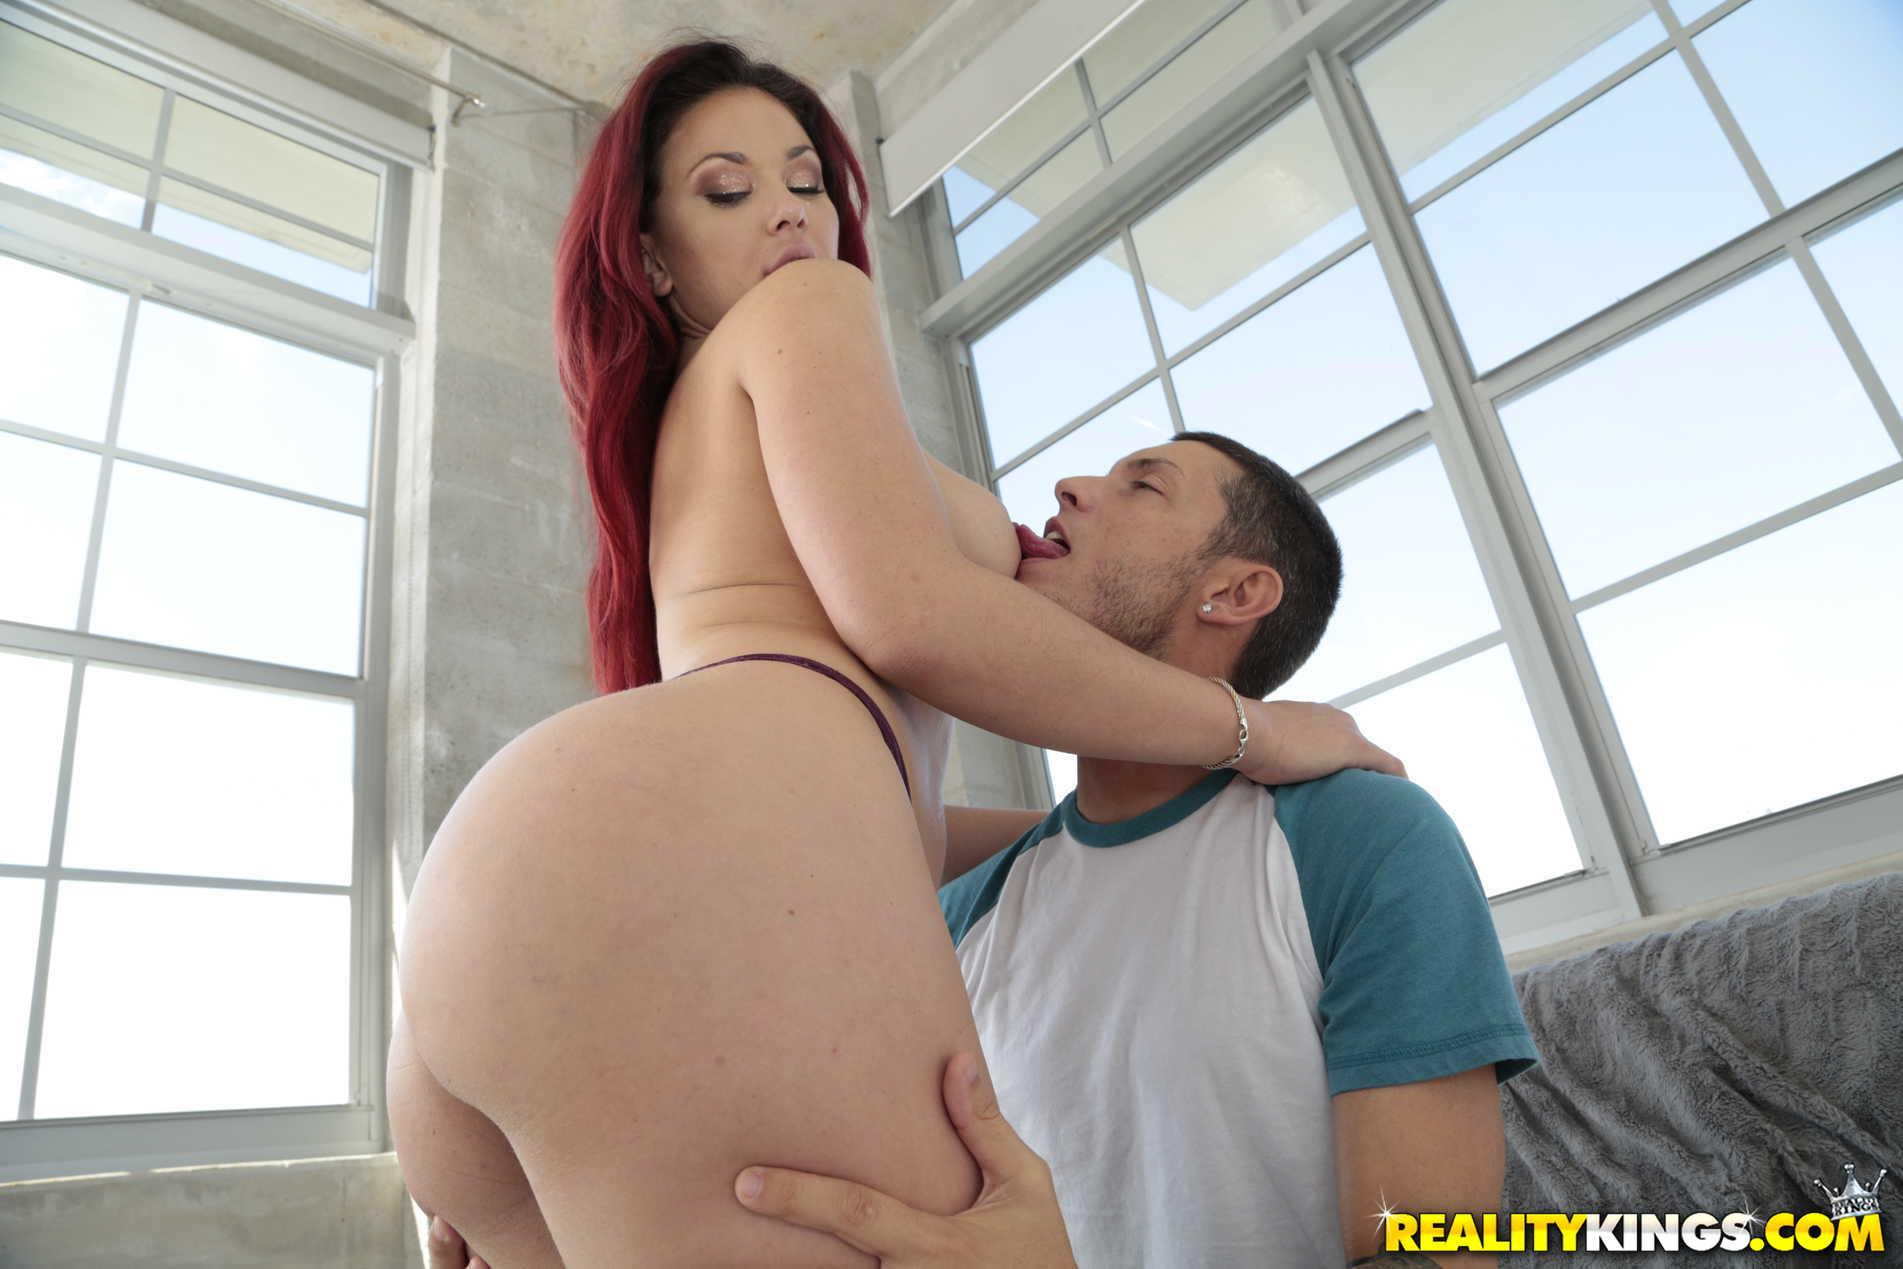 Porn tube Hot sucking dick pigtails fisting